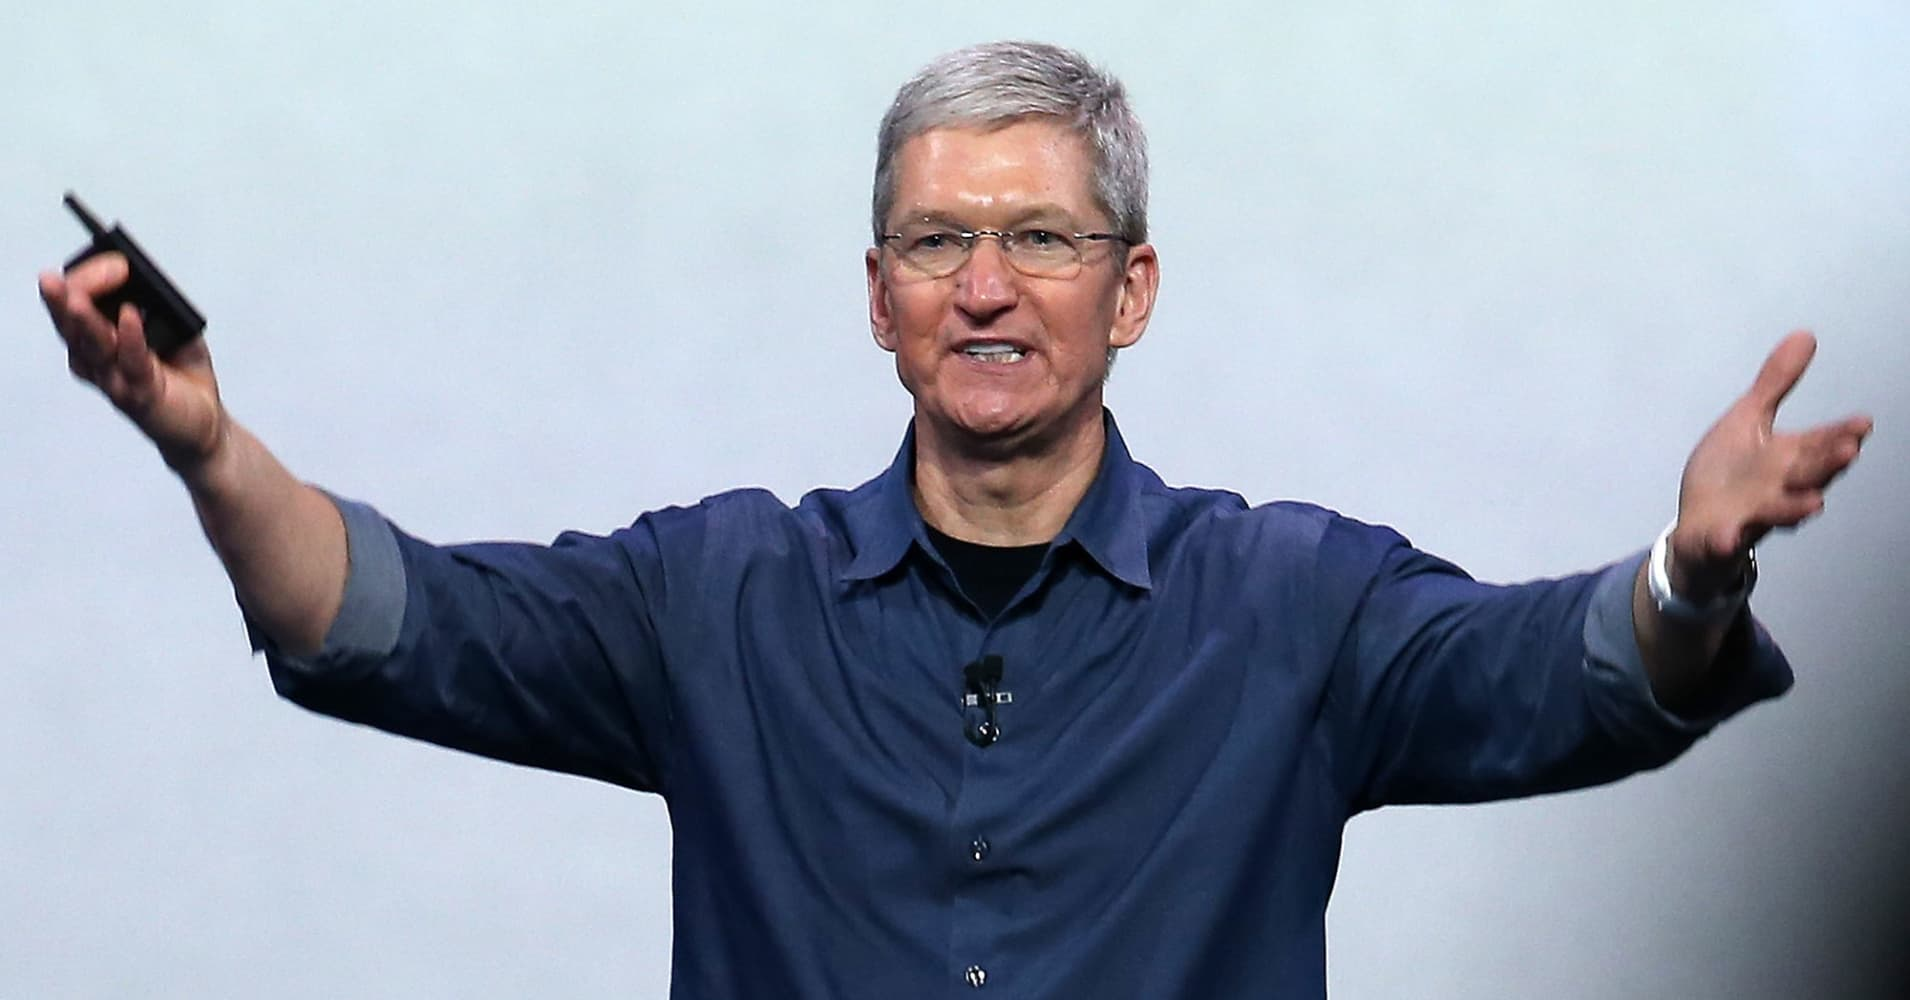 Apple's event where it unveils new iPhone and Mac software is set for June 4